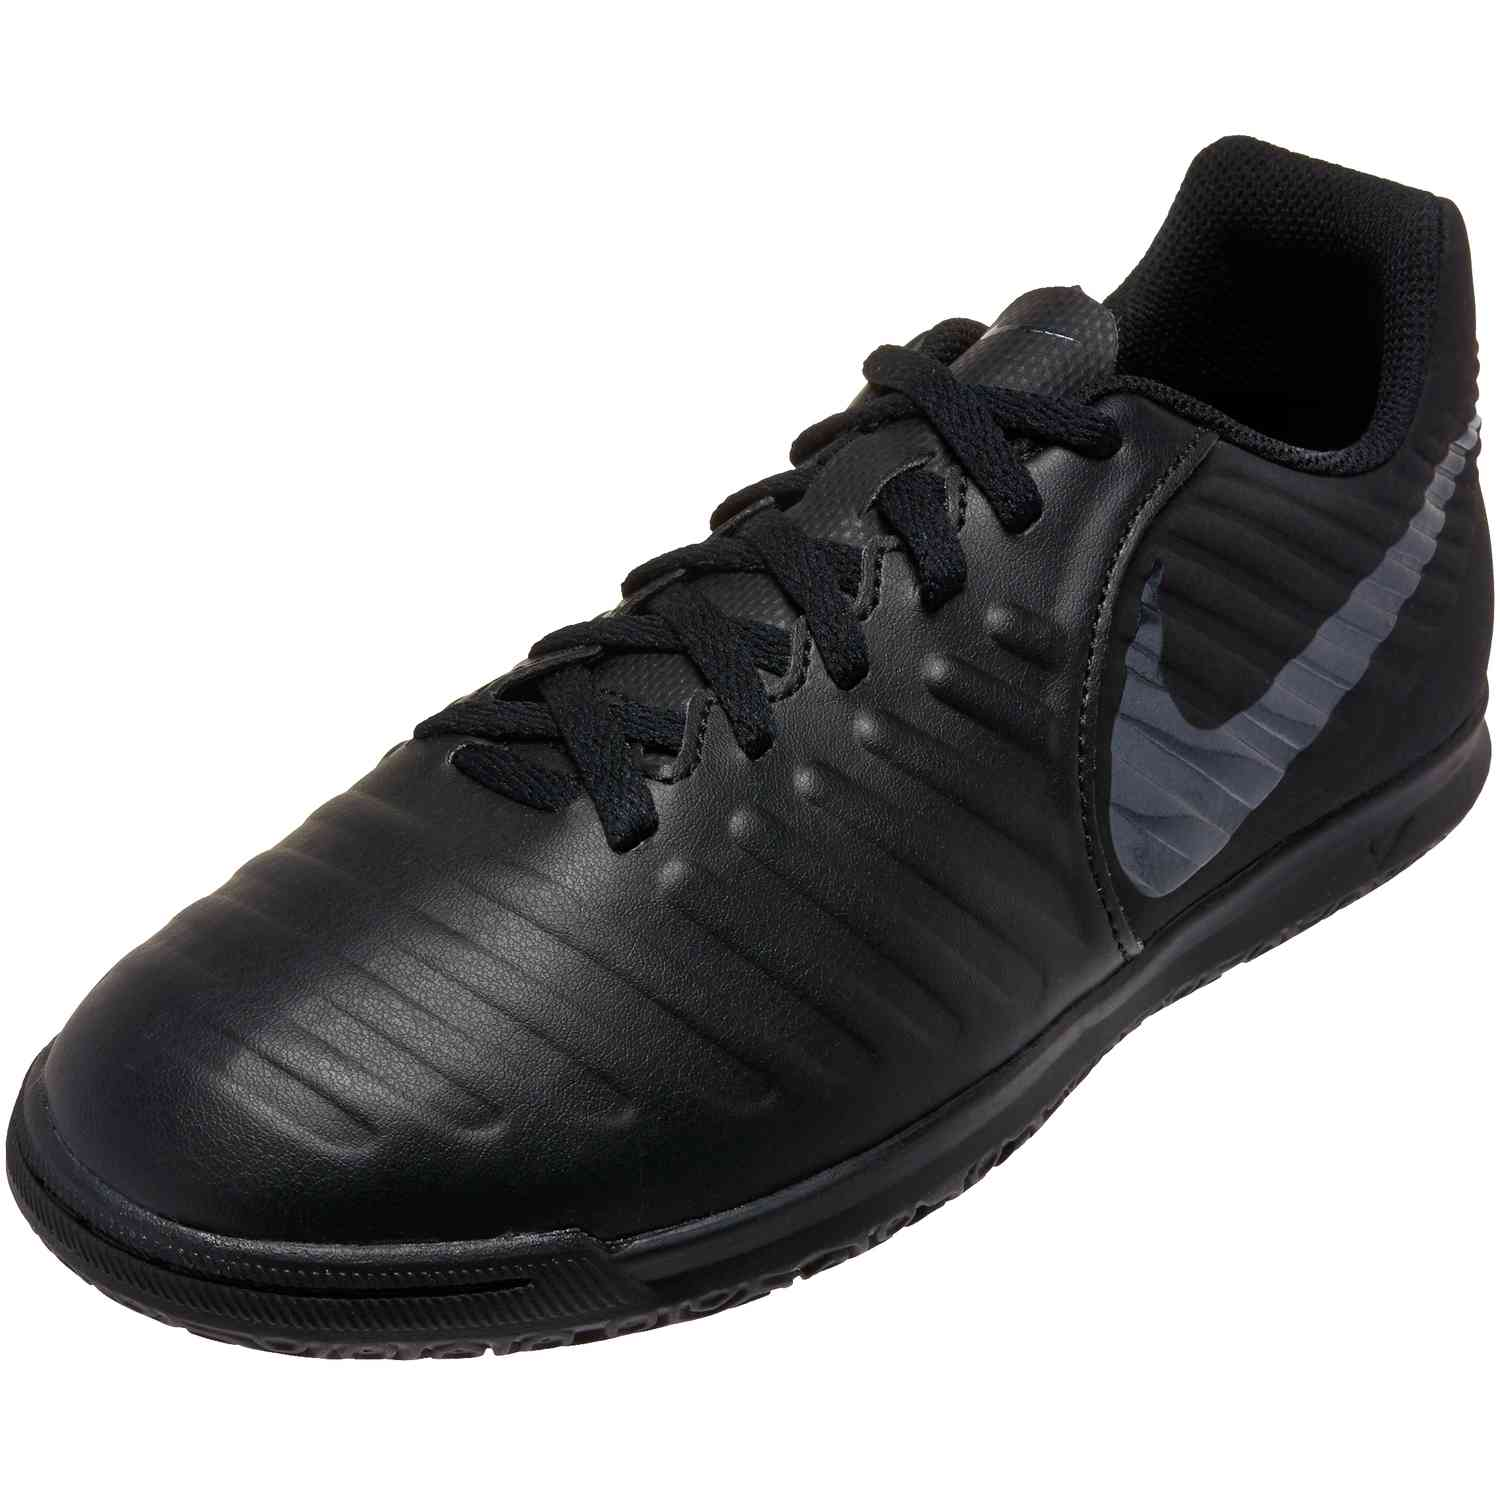 f7994e38b74 Nike Tiempo LegendX 7 Club IC - Youth - Black Black - SoccerPro